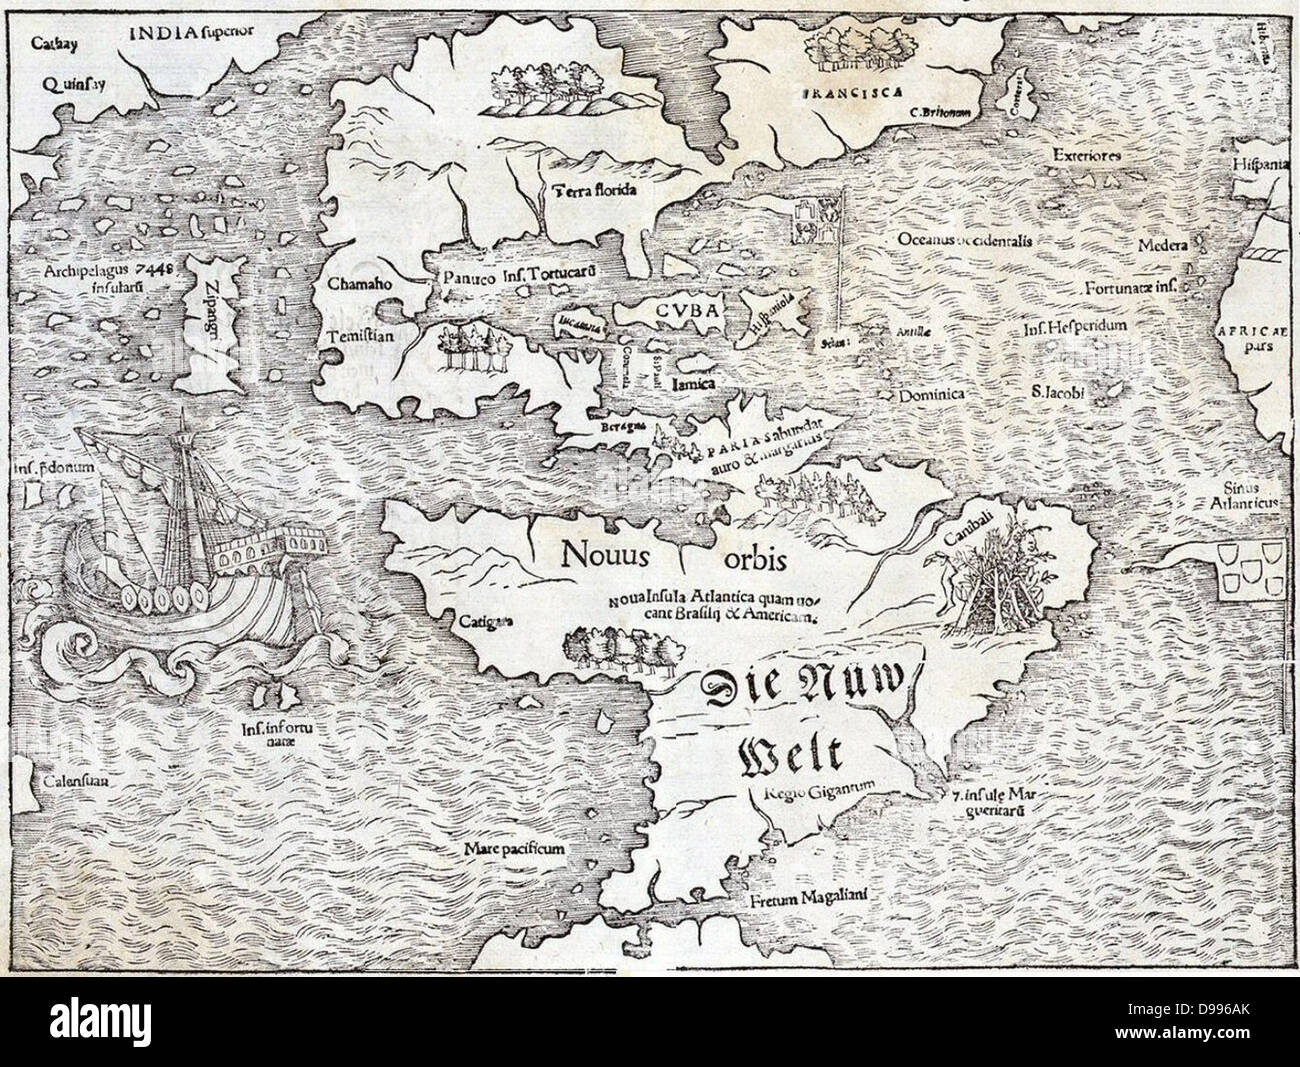 Map of the New World by Sebastian Munster, 1540, showing the name 'Atlantis Island' - Stock Image